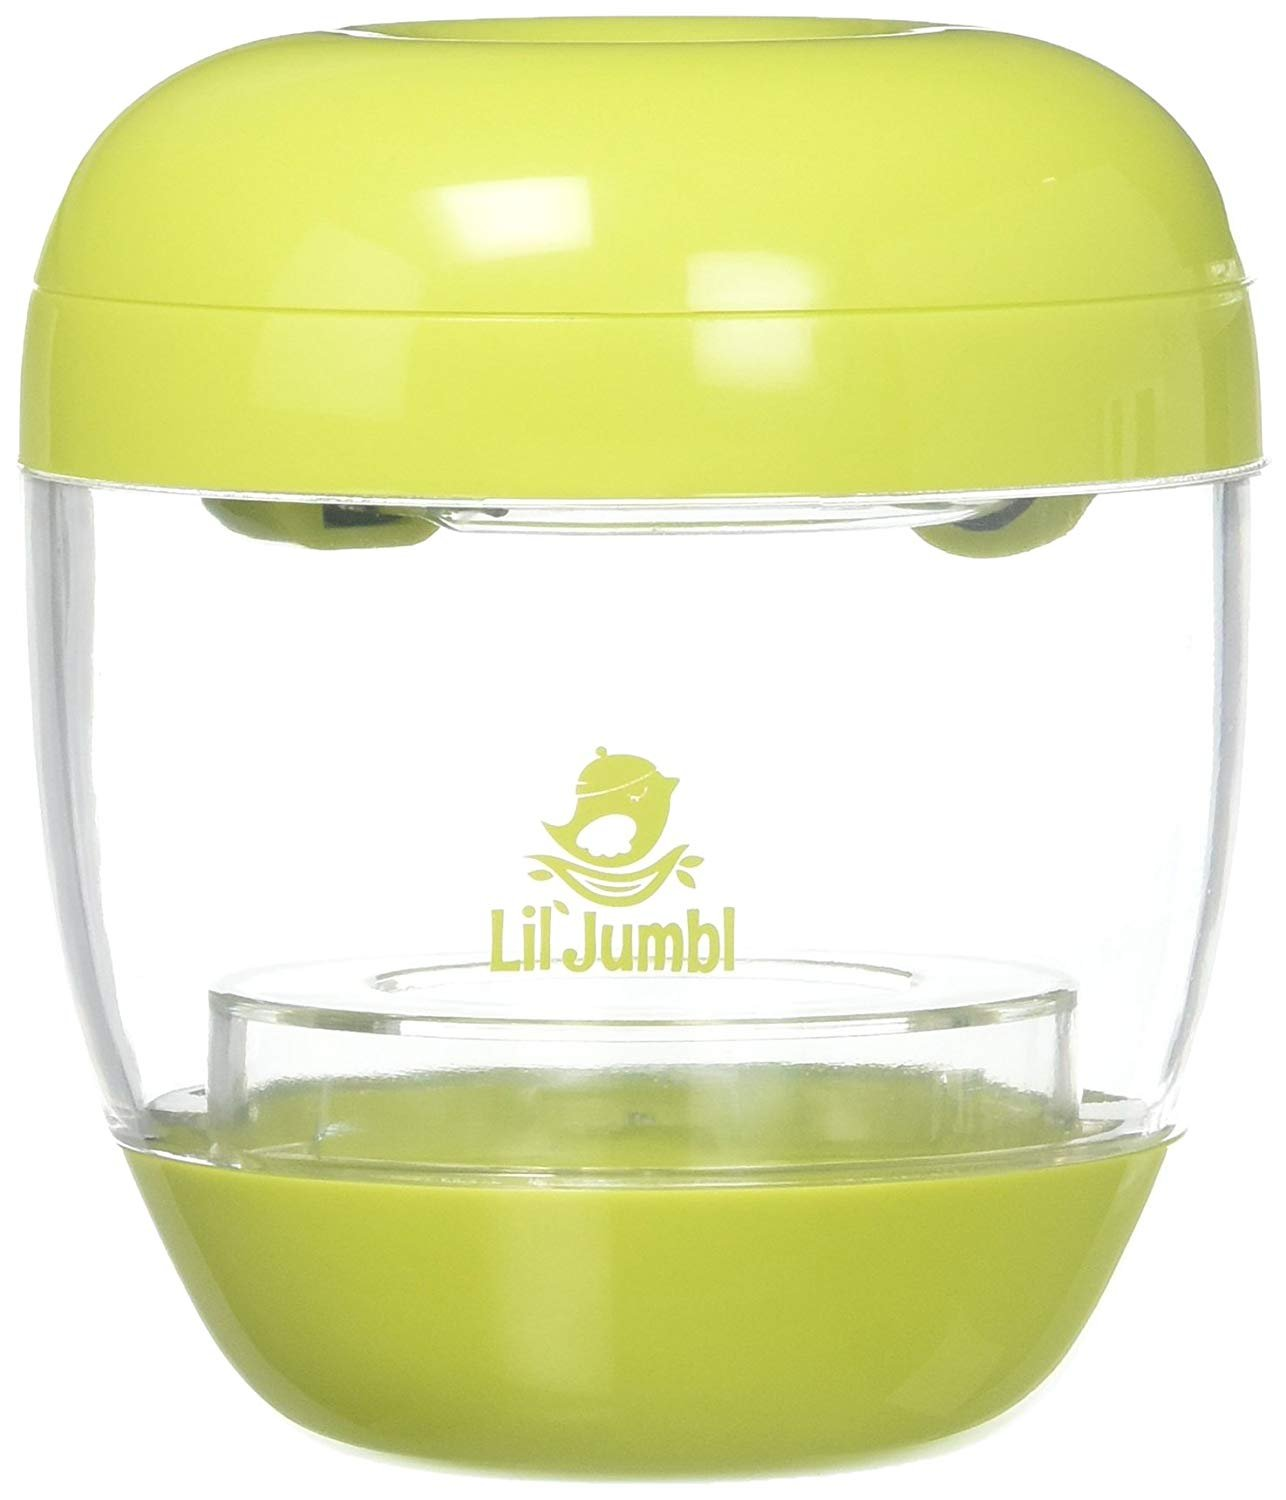 Lil' Jumbl Pacifier & Baby Bottle Nipple UV Sanitizer – Clinically Proven to Safely Sterilize & Kill up to 99.9% of Germs & Bacteria - Pink Lil' Jumbl LJ-BS-01-P-1